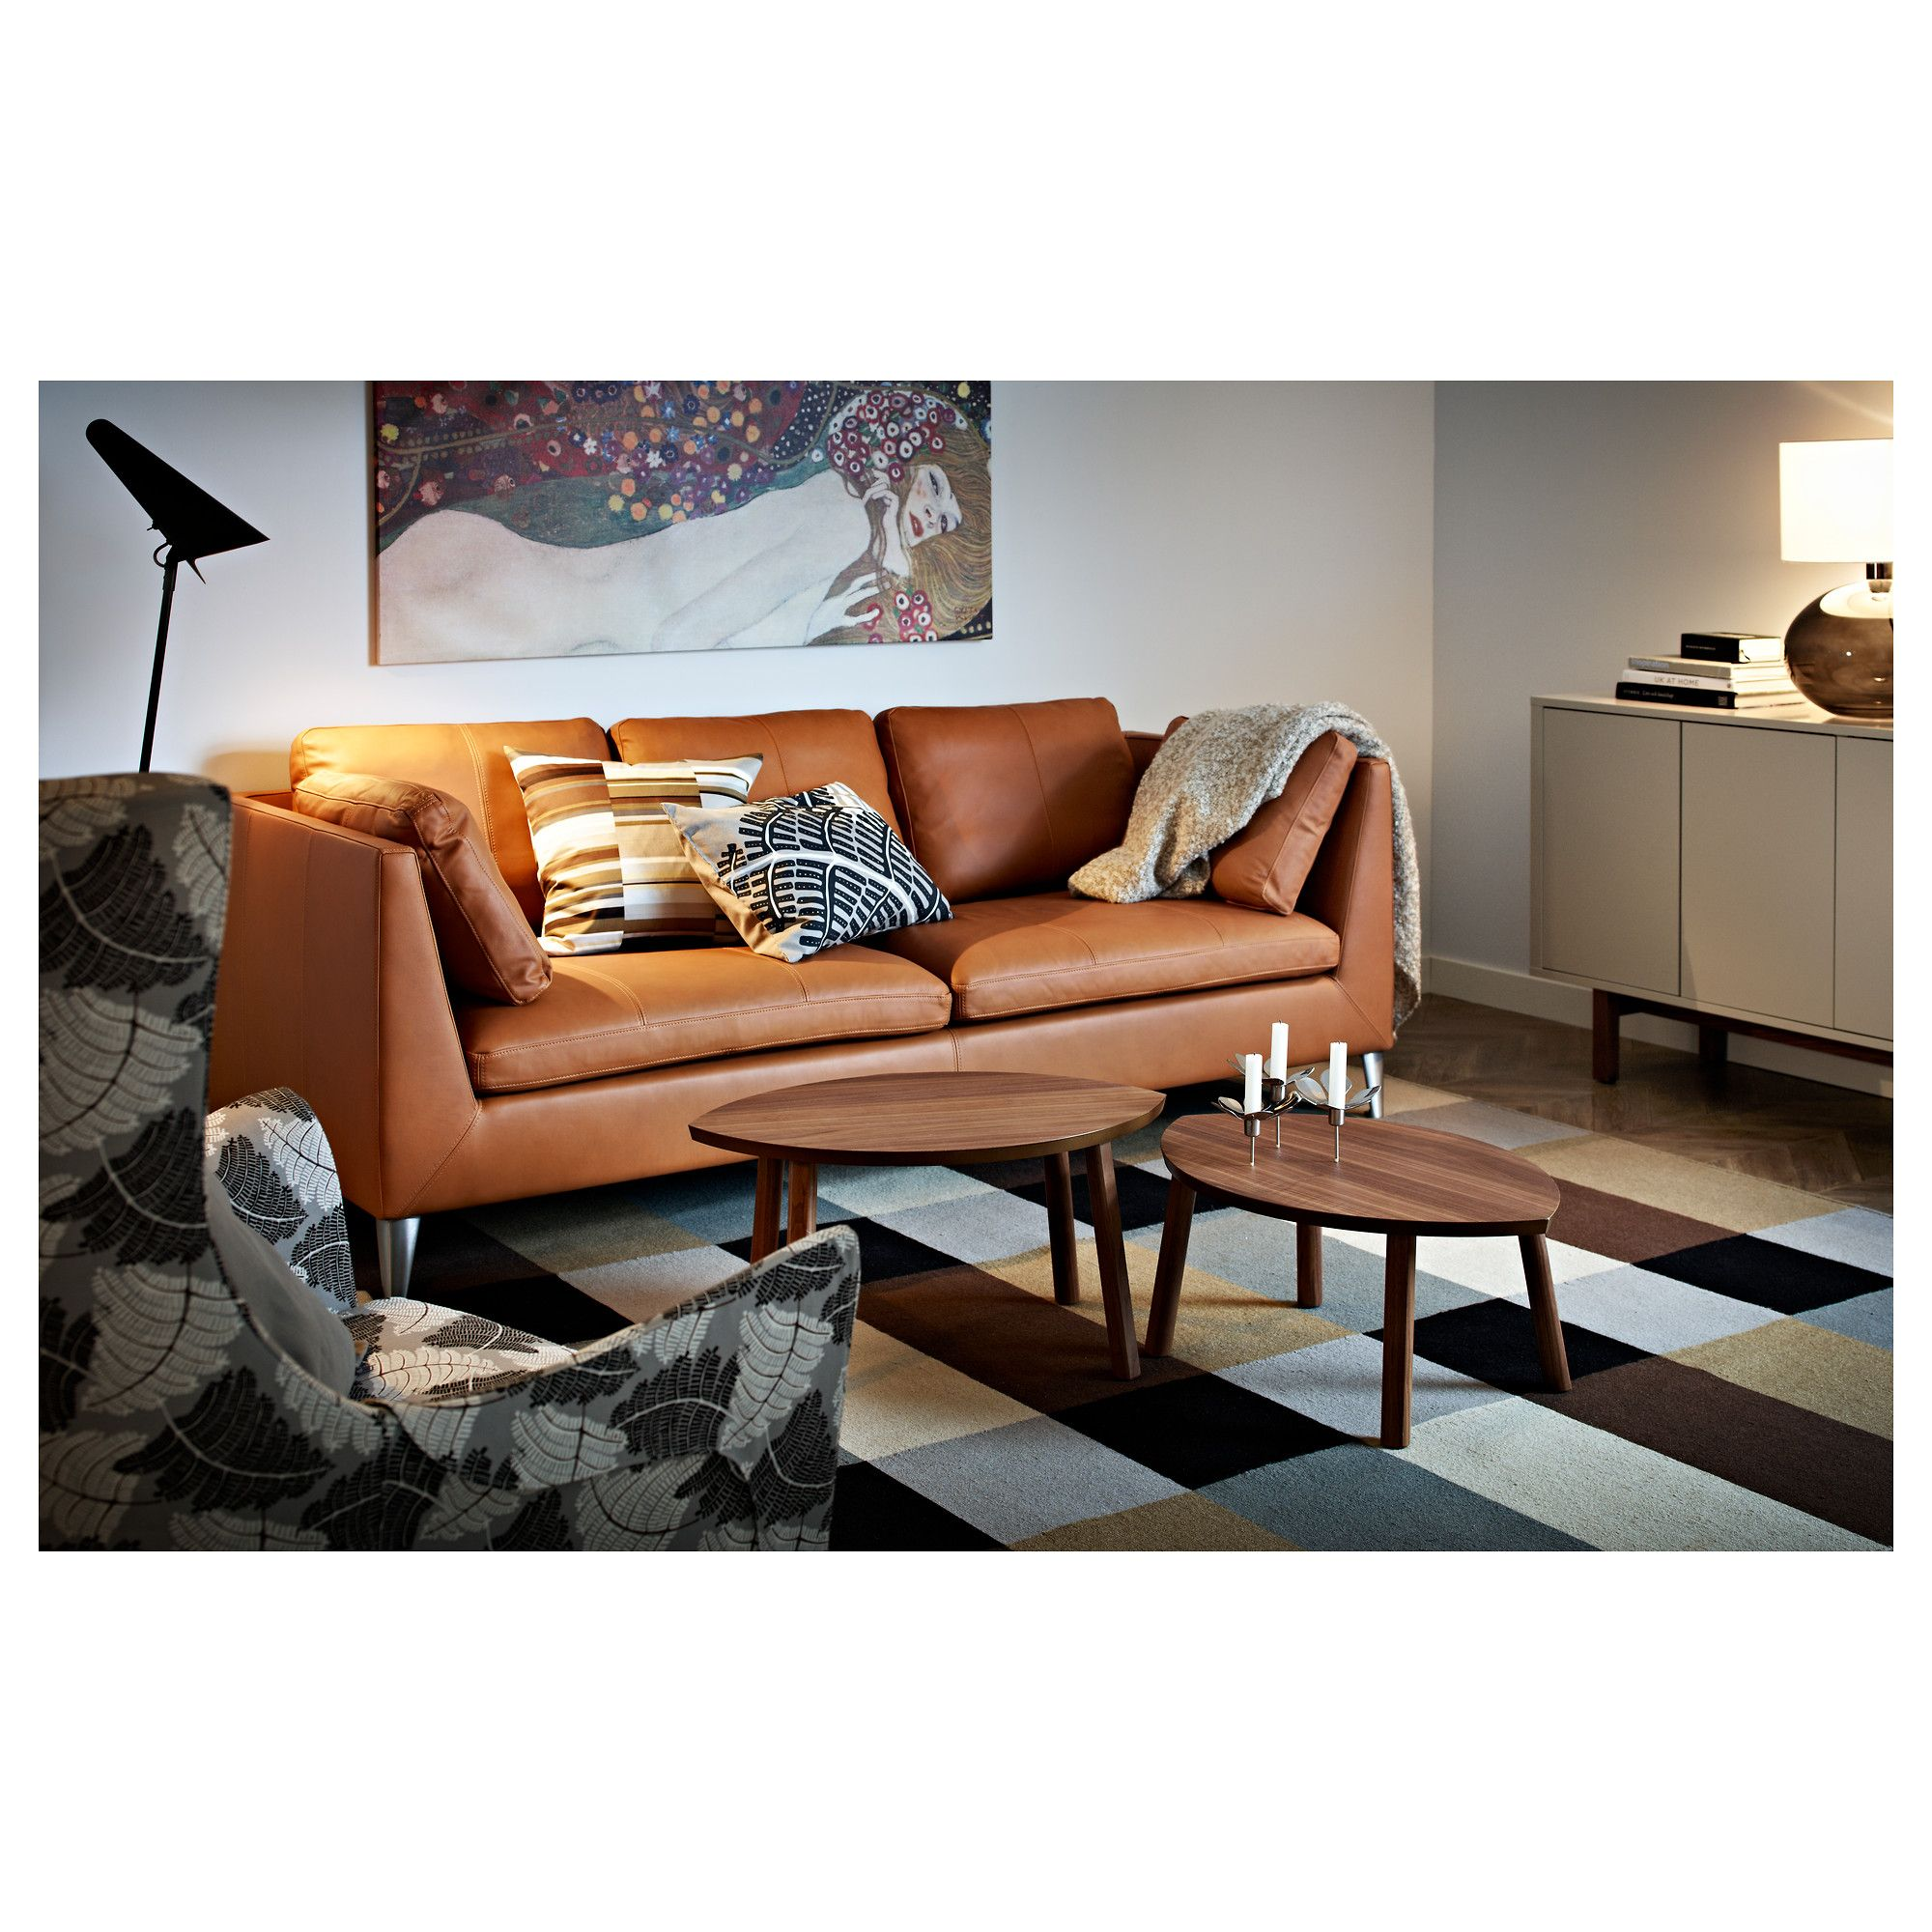 Ikea Stockholm Nesting Tables Set Of 2 Walnut Veneer Canape D Angle Cuir Canape Cuir Et Canape Angle